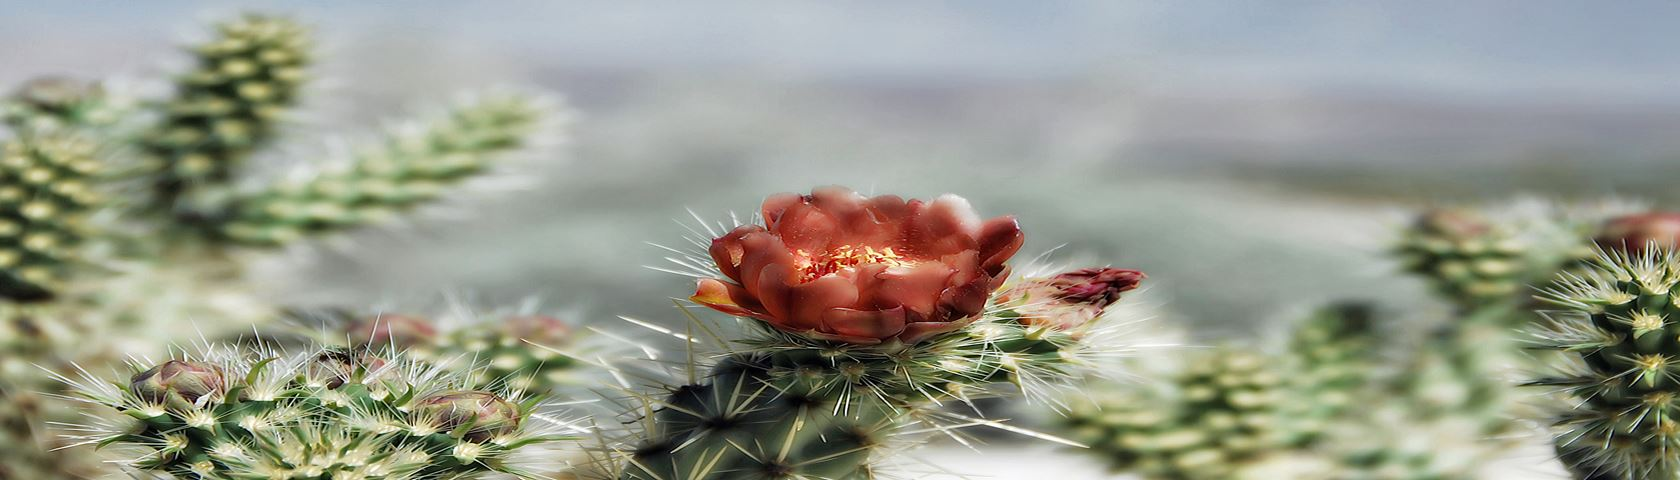 Wolf's Cholla Cactus Flower